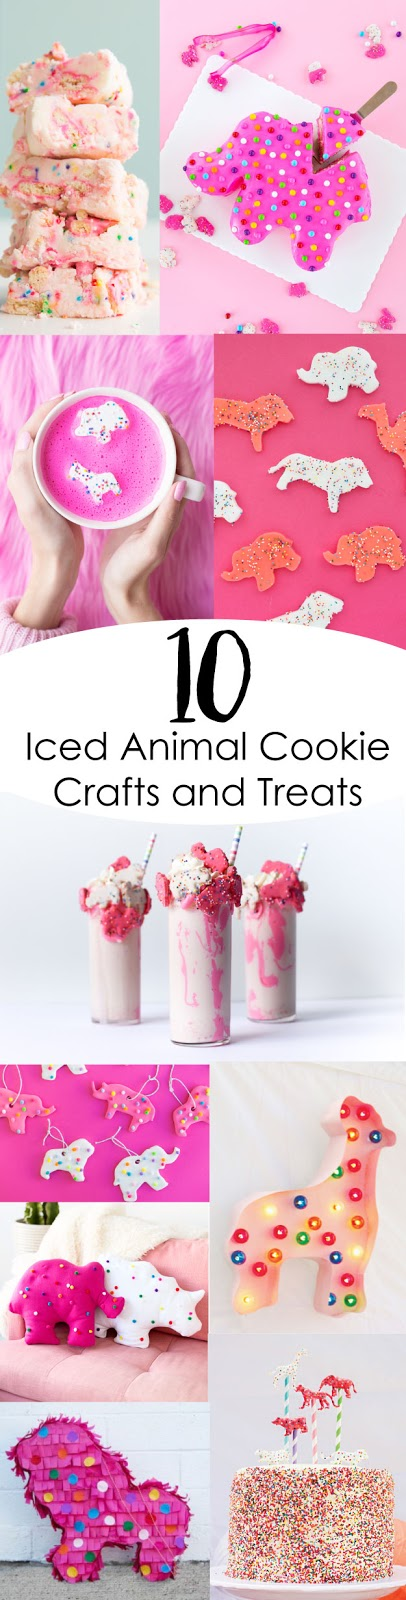 10 iced animal cookie treats and crafts for your next party - diy tutorial - recipe - food